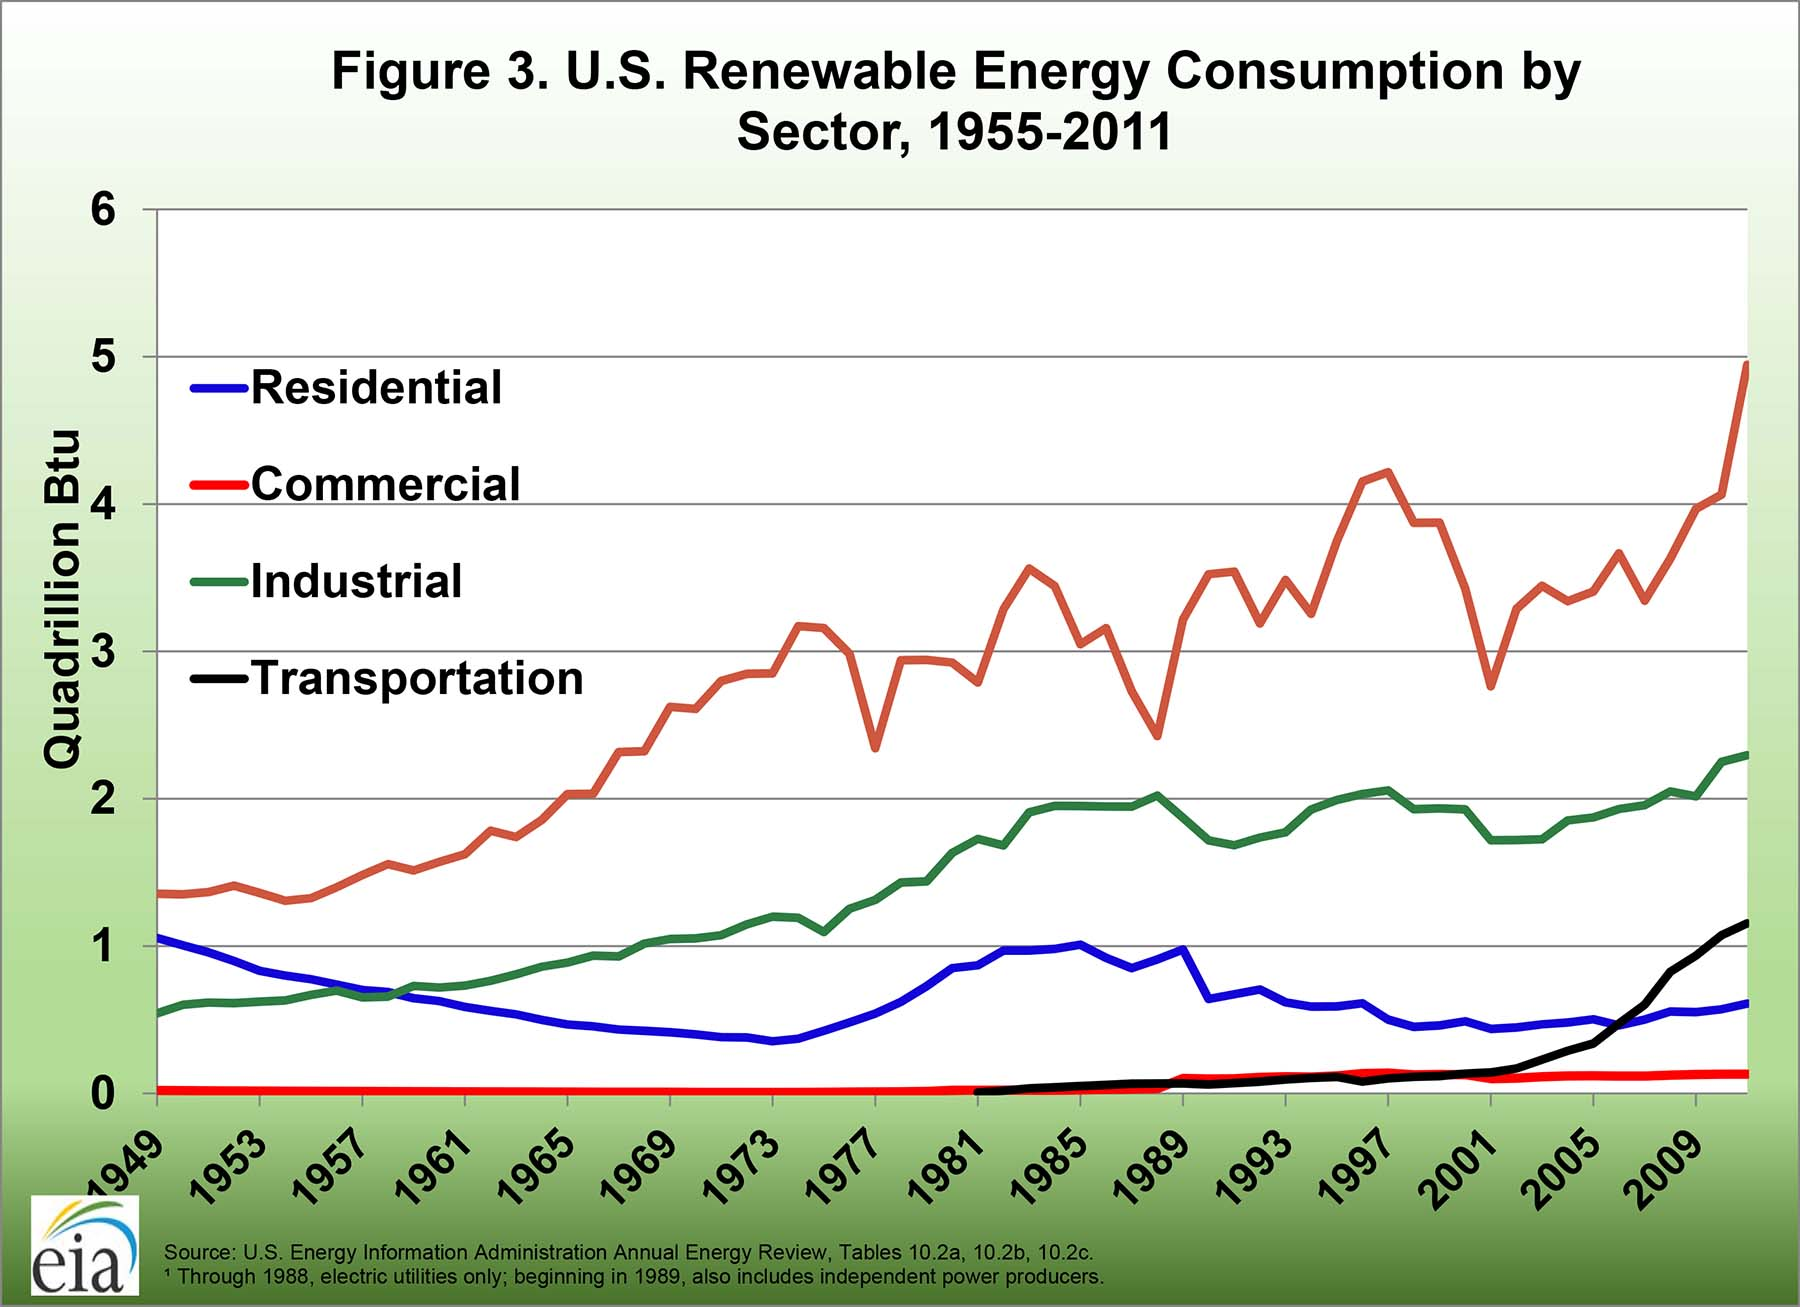 U.S. renewbale energy consumption by sector